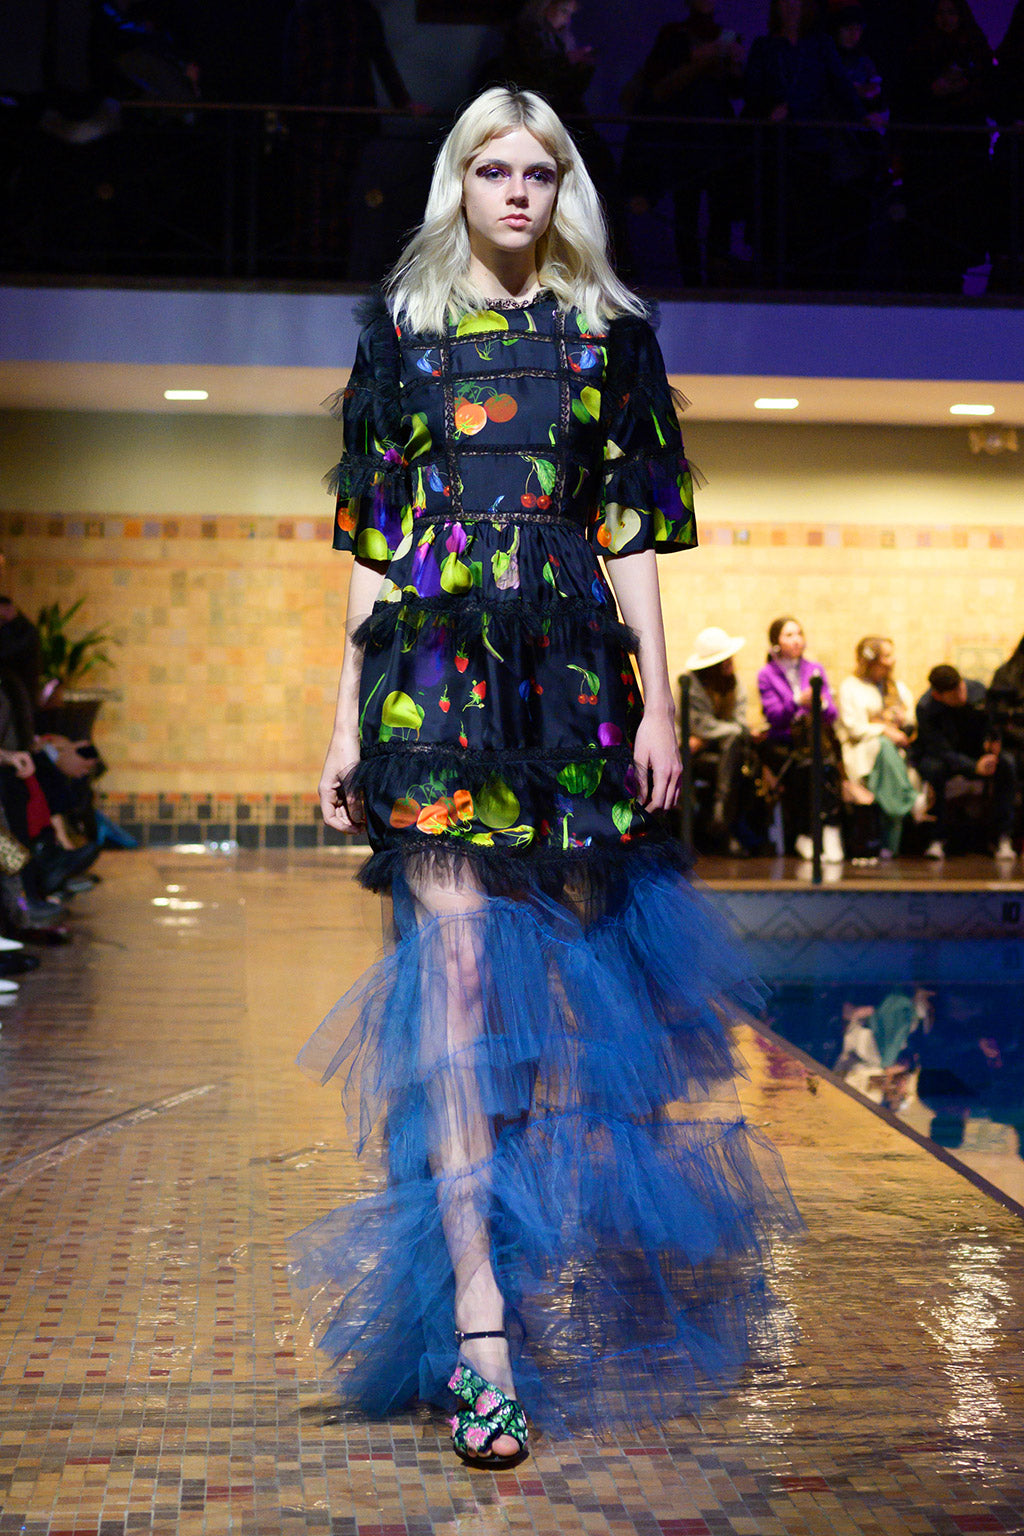 Cynthia Rowley Fall 2019 look 1 featuring a mini dress with elbow length sleeves and tulle in a fruit print